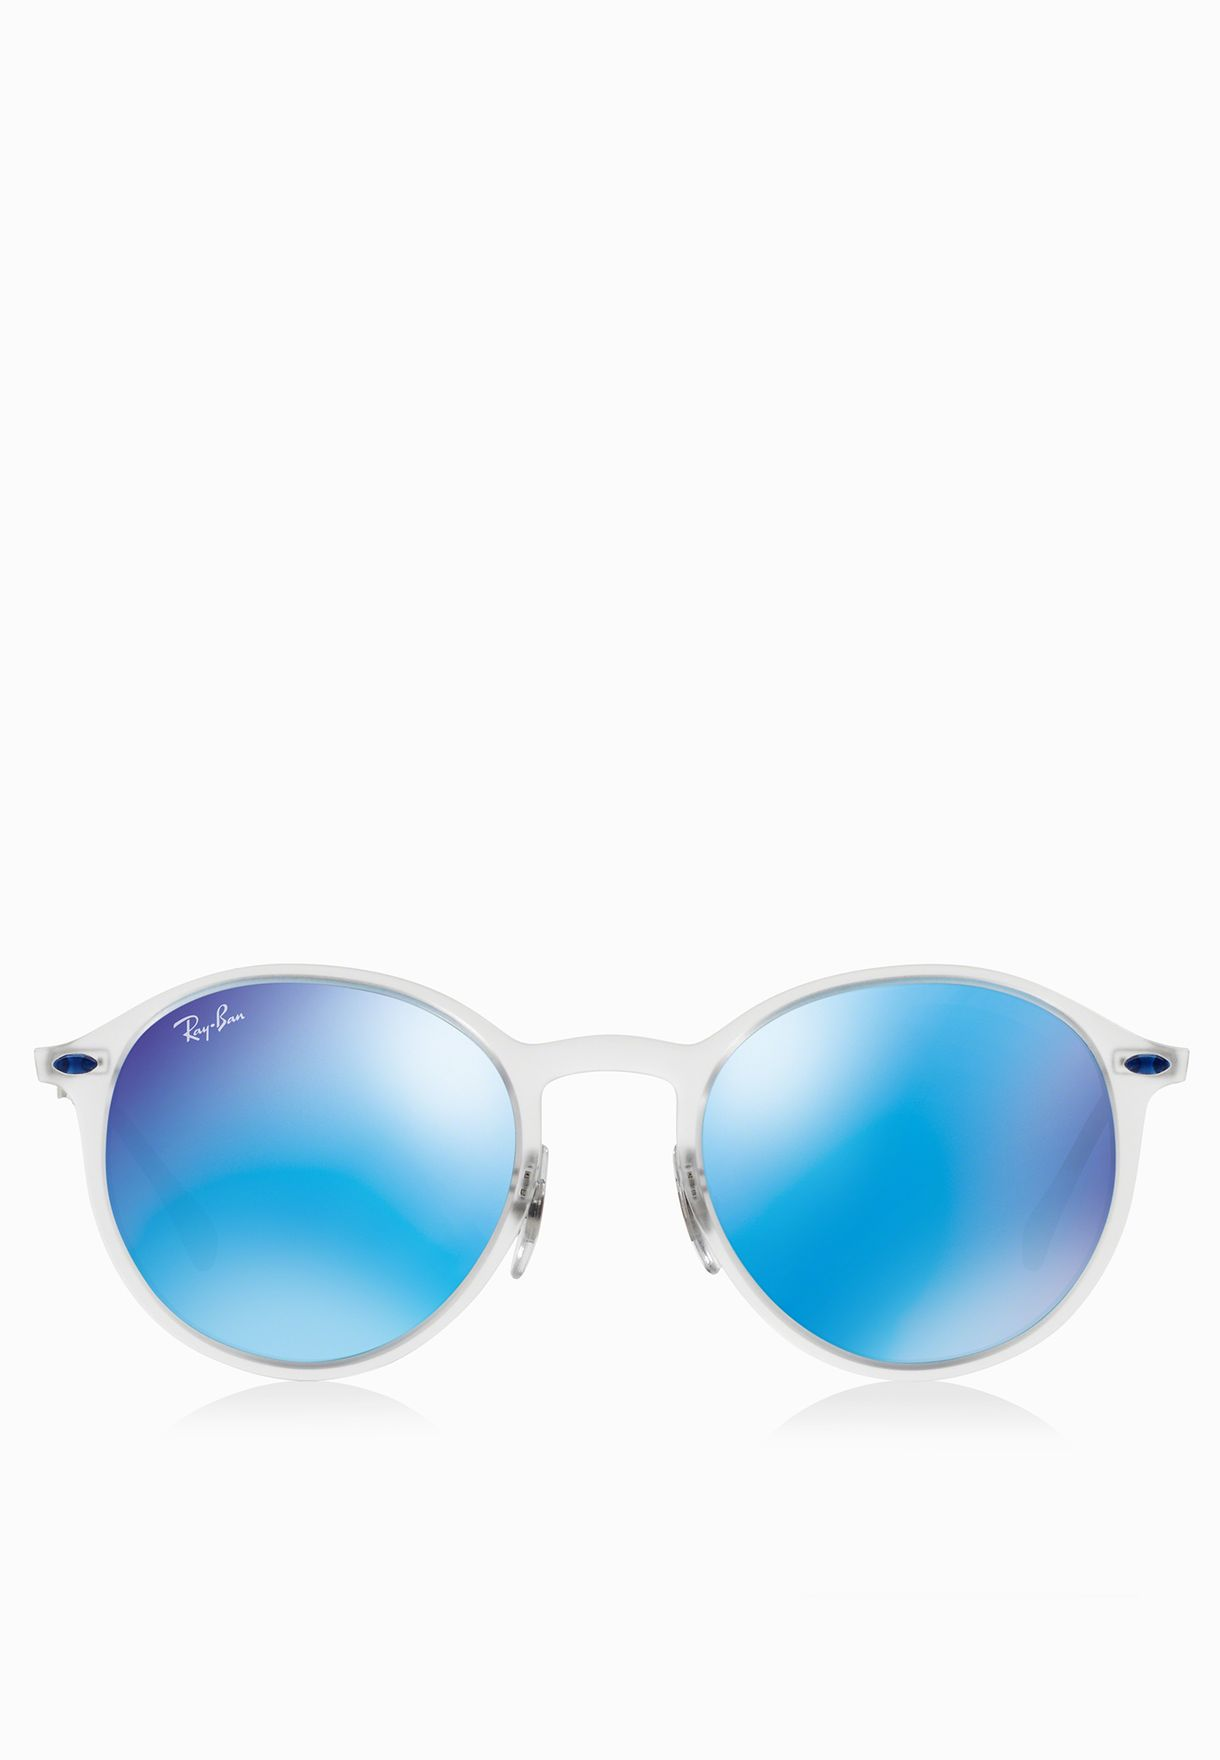 c119c30e74 ... czech shop ray ban white tech light ray round sunglasses 8053672441185  for men in qatar ra736ac71lxk